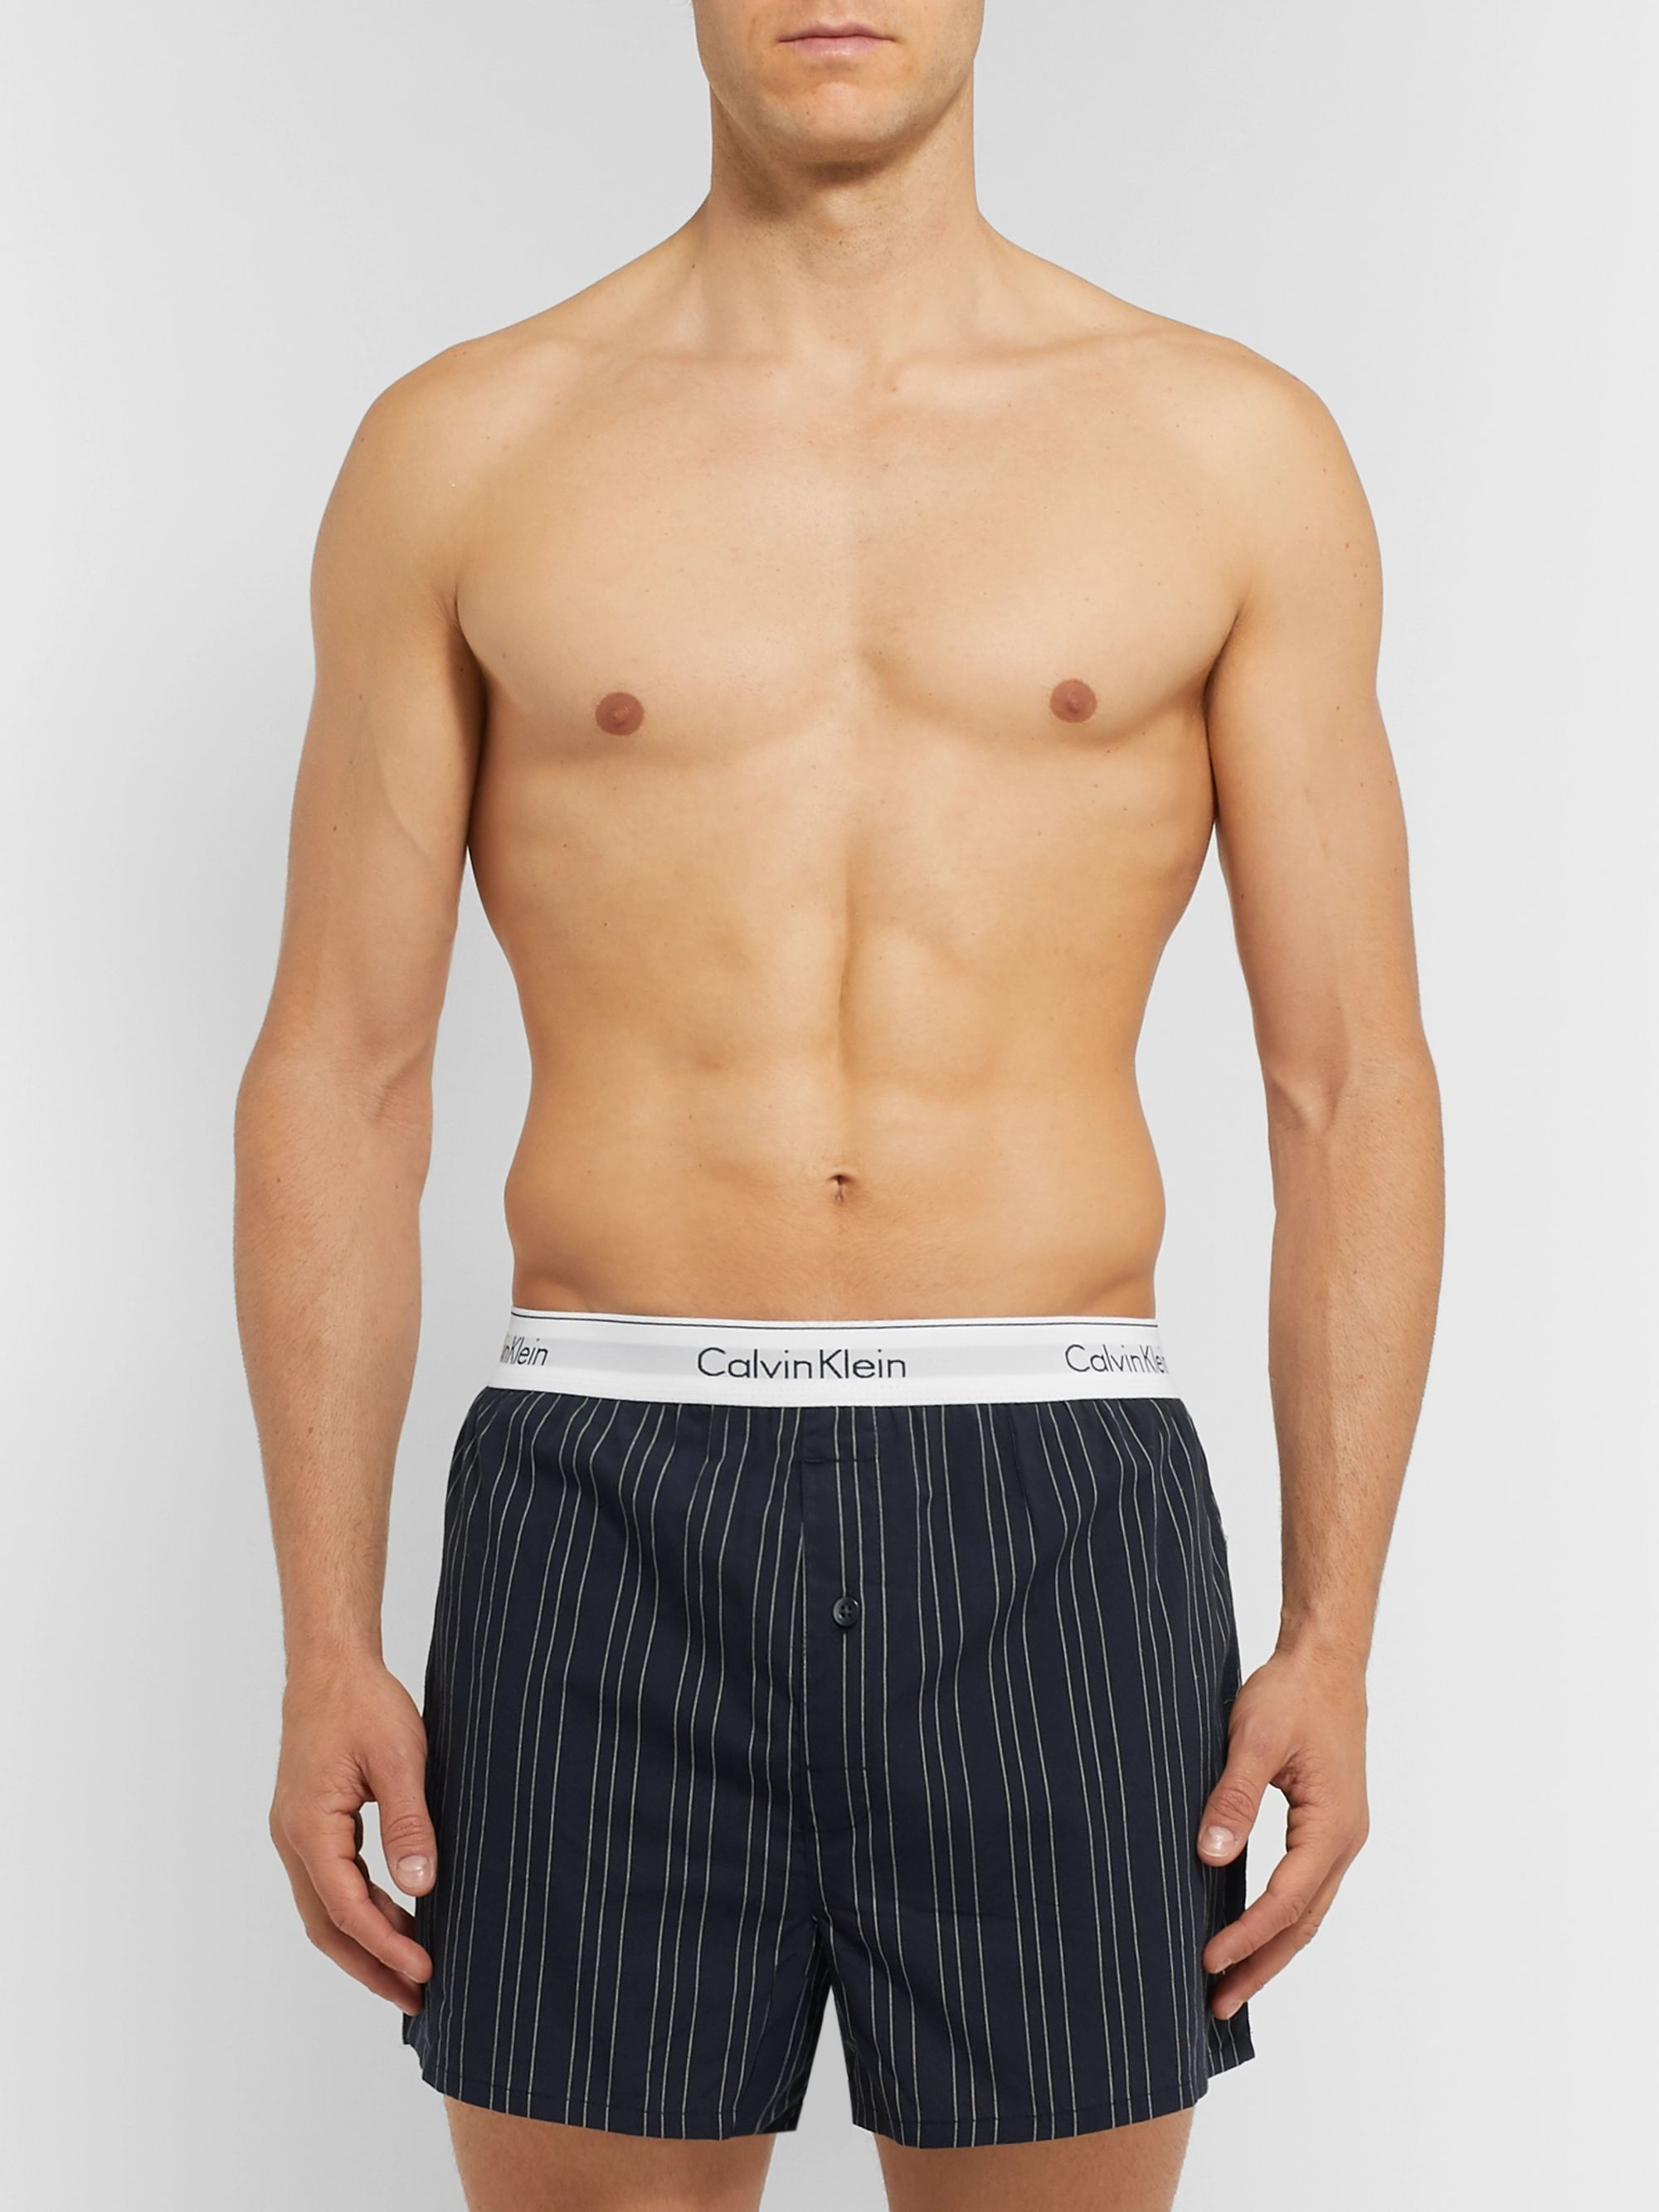 Calvin Klein Underwear Two-Pack Printed Cotton Boxer Shorts